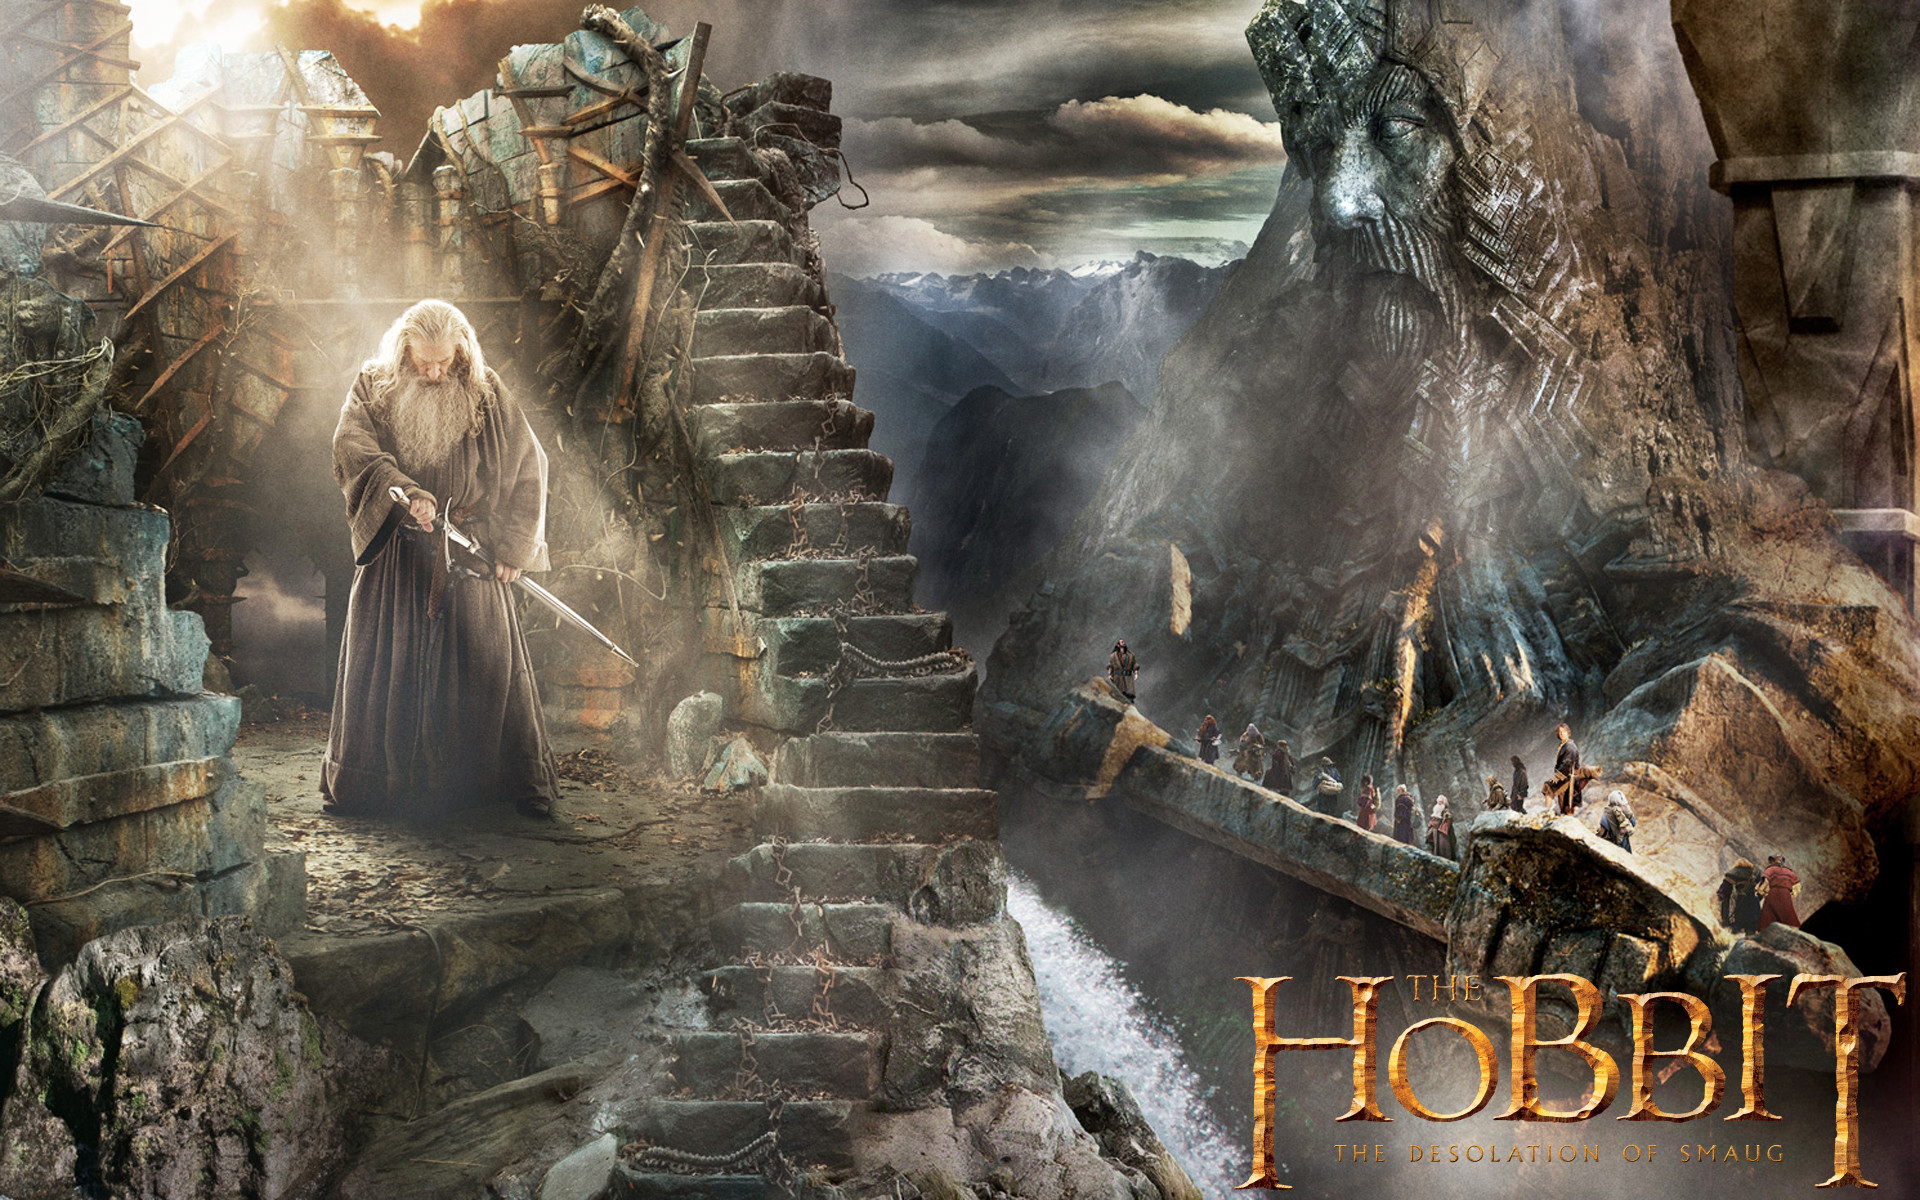 1920x1200 o hobbit images The Hobbit: The Desolation of Smaug wallpaper HD wallpaper  and background photos